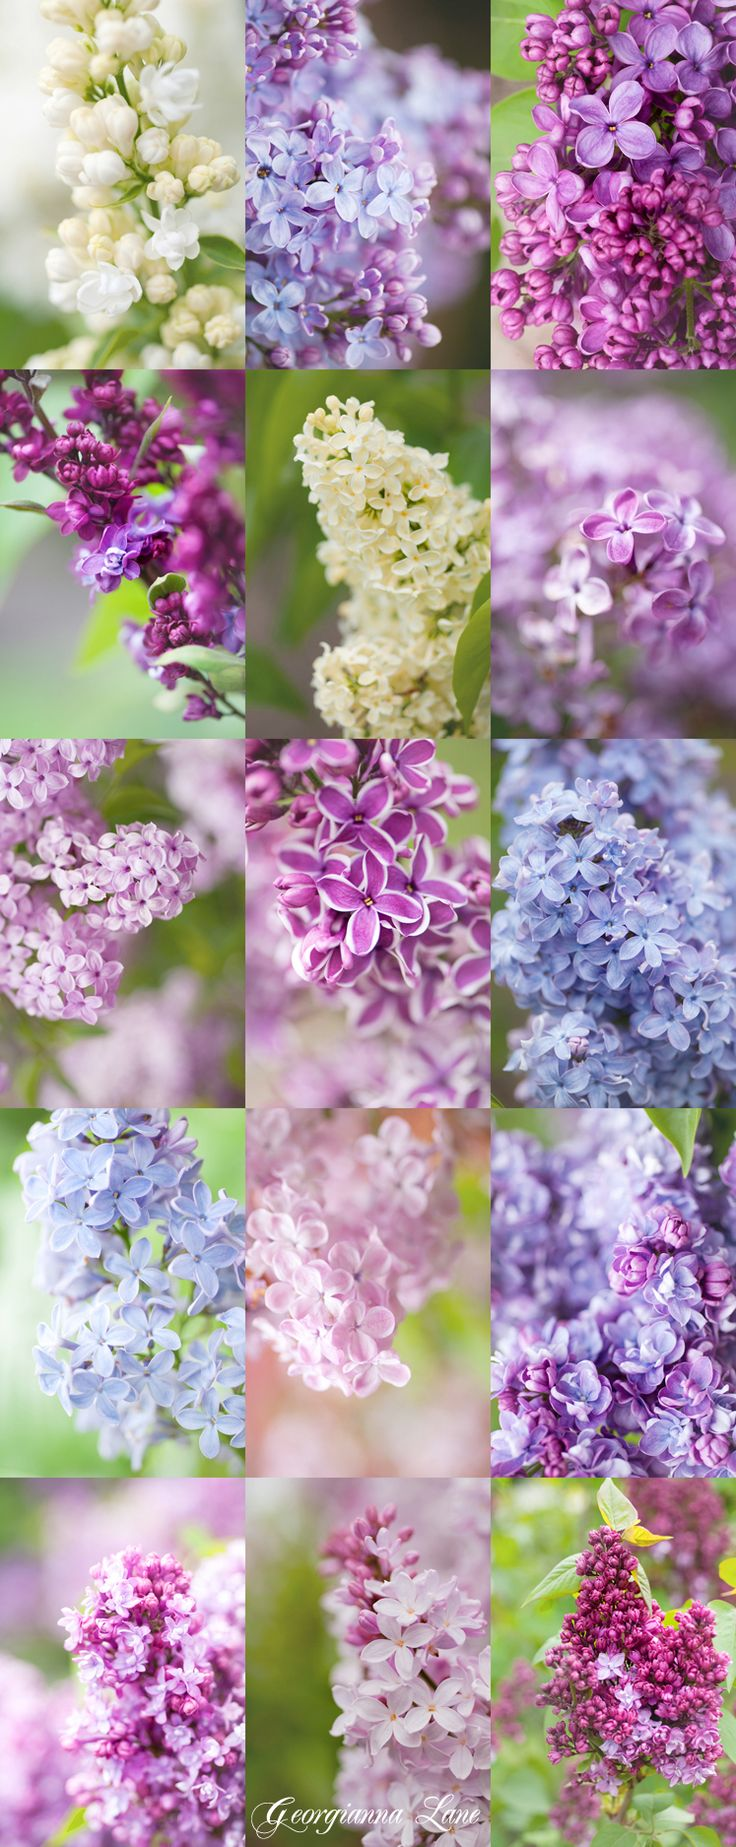 beautiful lilacs!: Gardens Ideas, Green Thumb, Favorite Flowers, Lilacs Bush, Lilacs Gardens, Flowers Lilacs, Lilacs In The Gardens, Fragrance Gardens, Lilacs Flowers